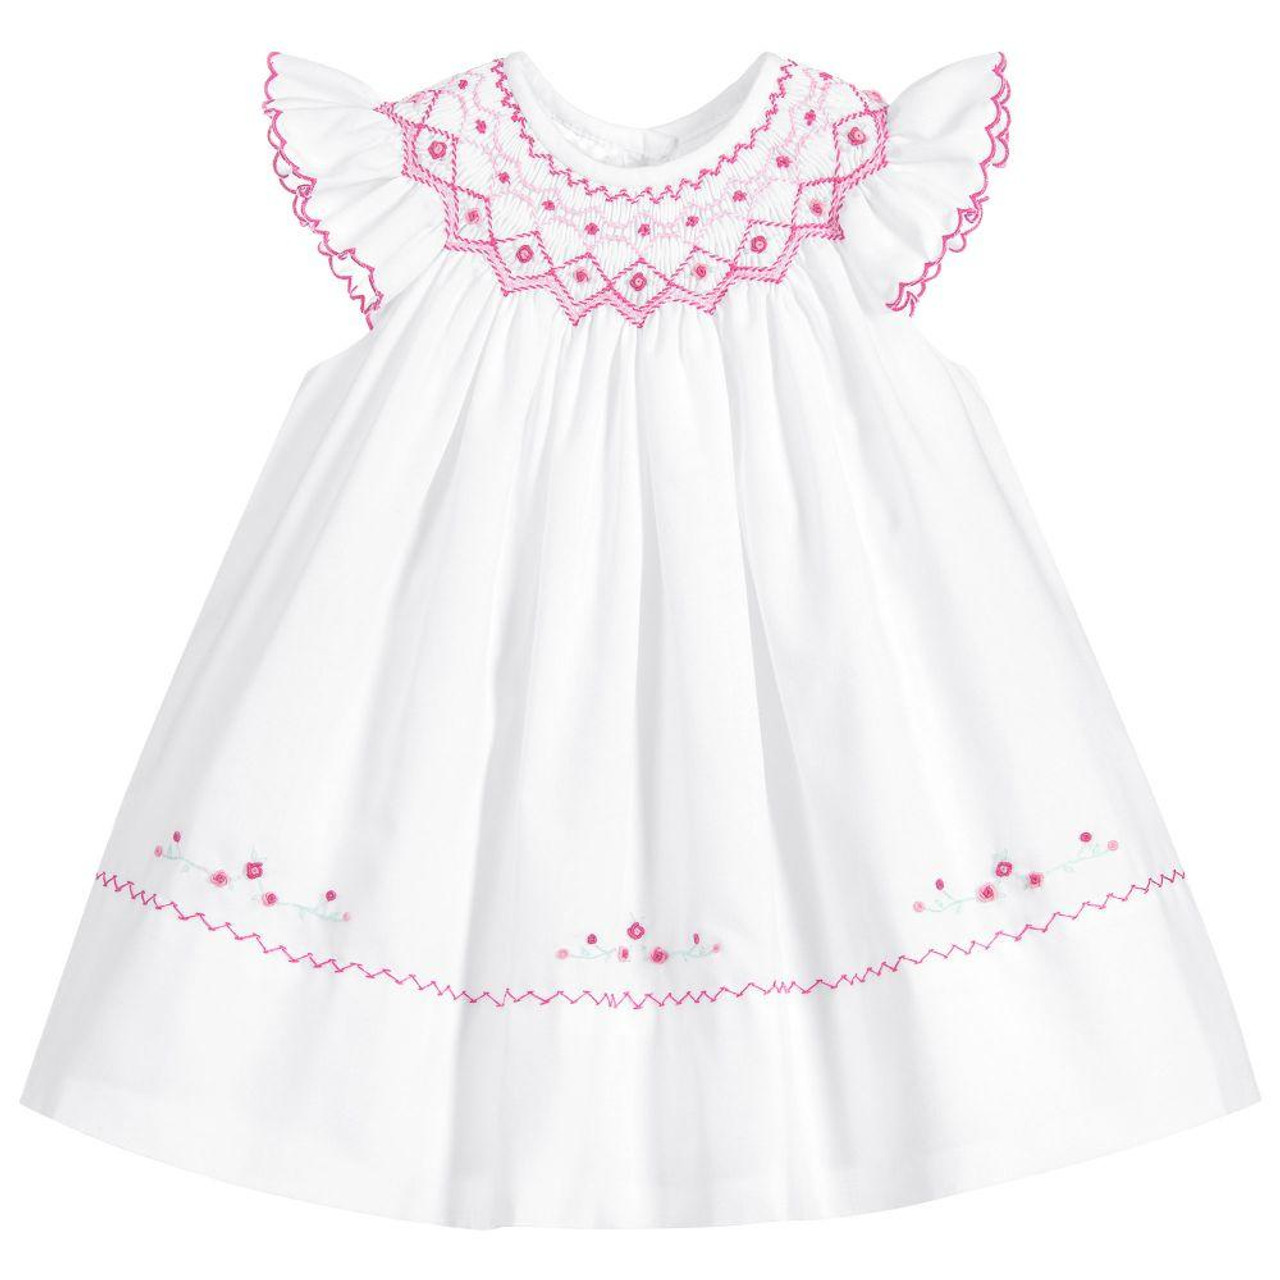 d305d4c7e0afd Sarah Louise. £47.00. Baby Girls white and Pink Smocked Dress